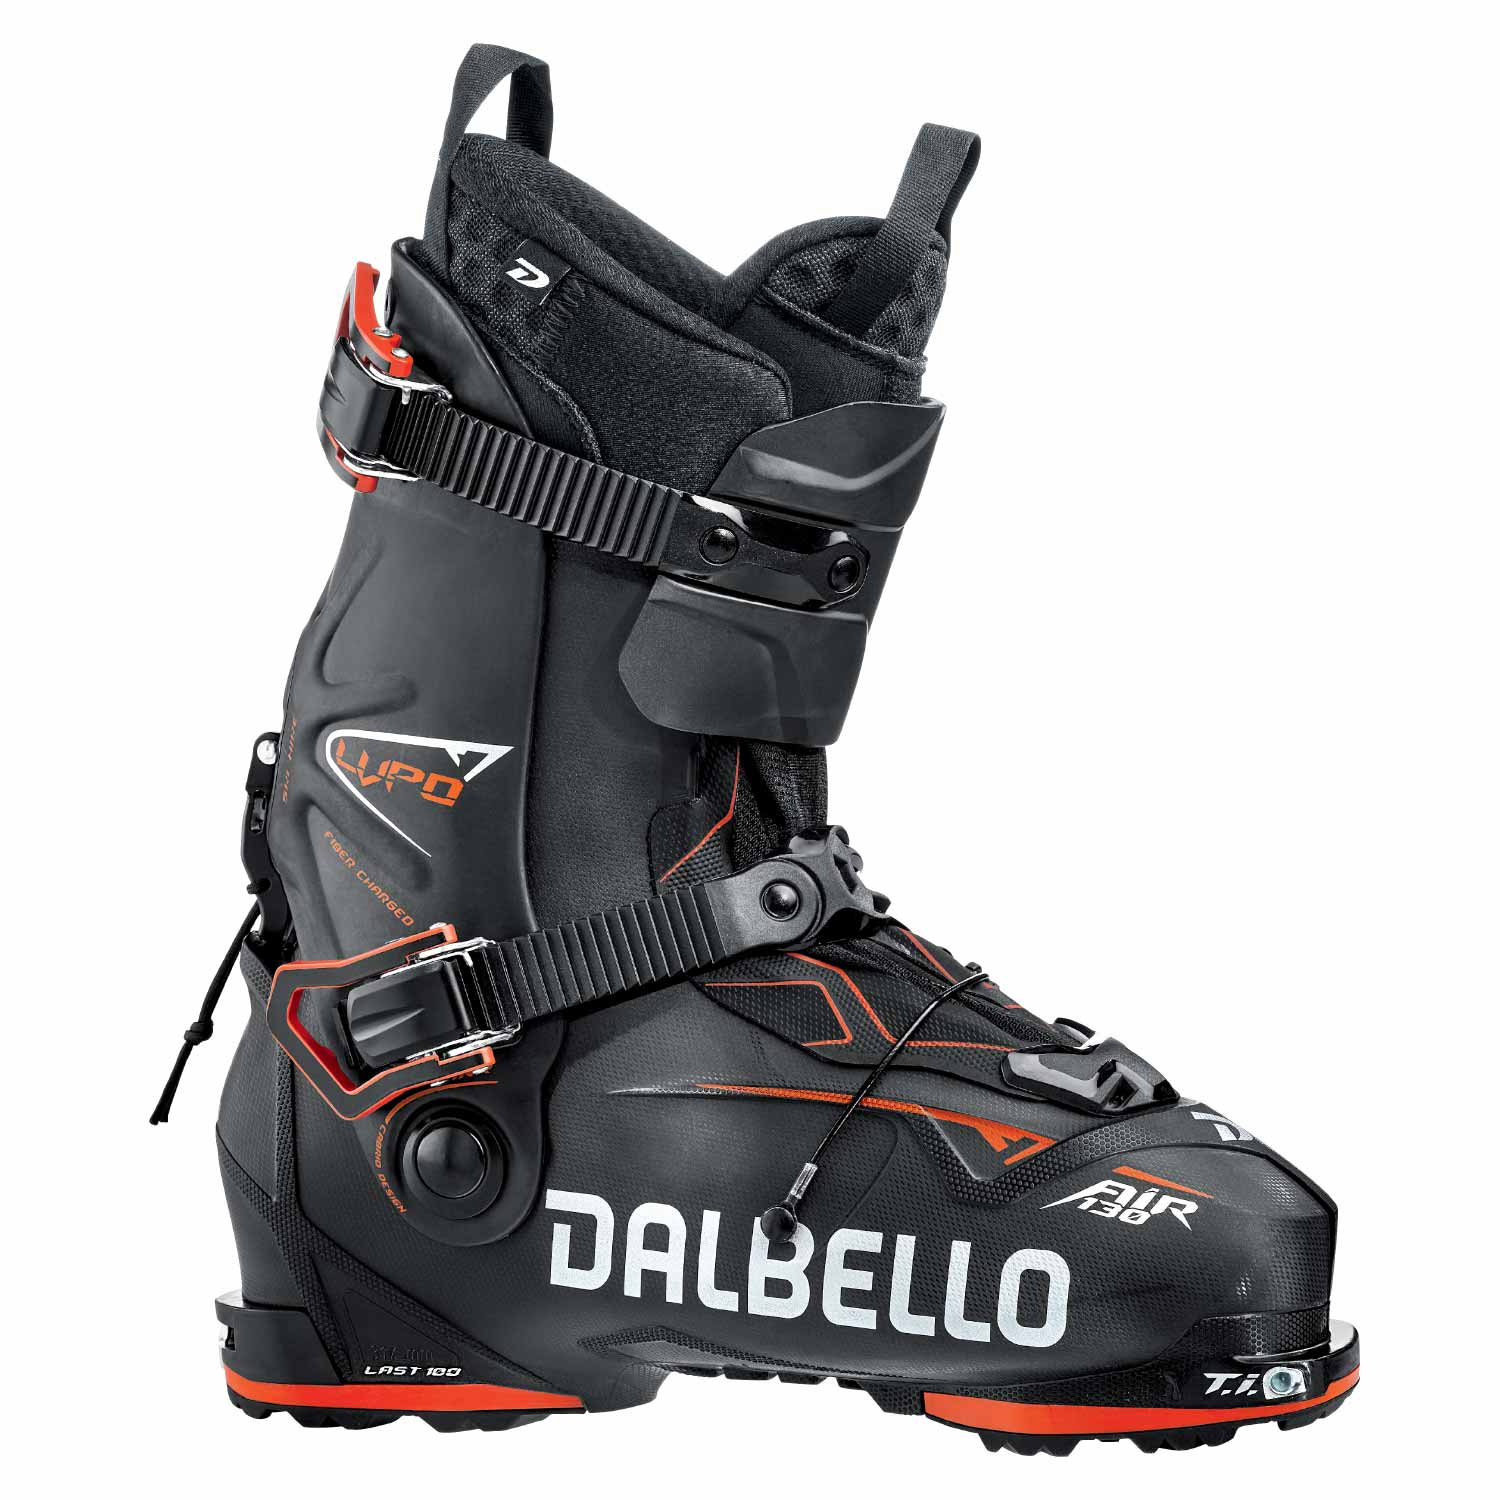 Dalbello Lupo AIR 130 Ski Boot Black/Red 2020